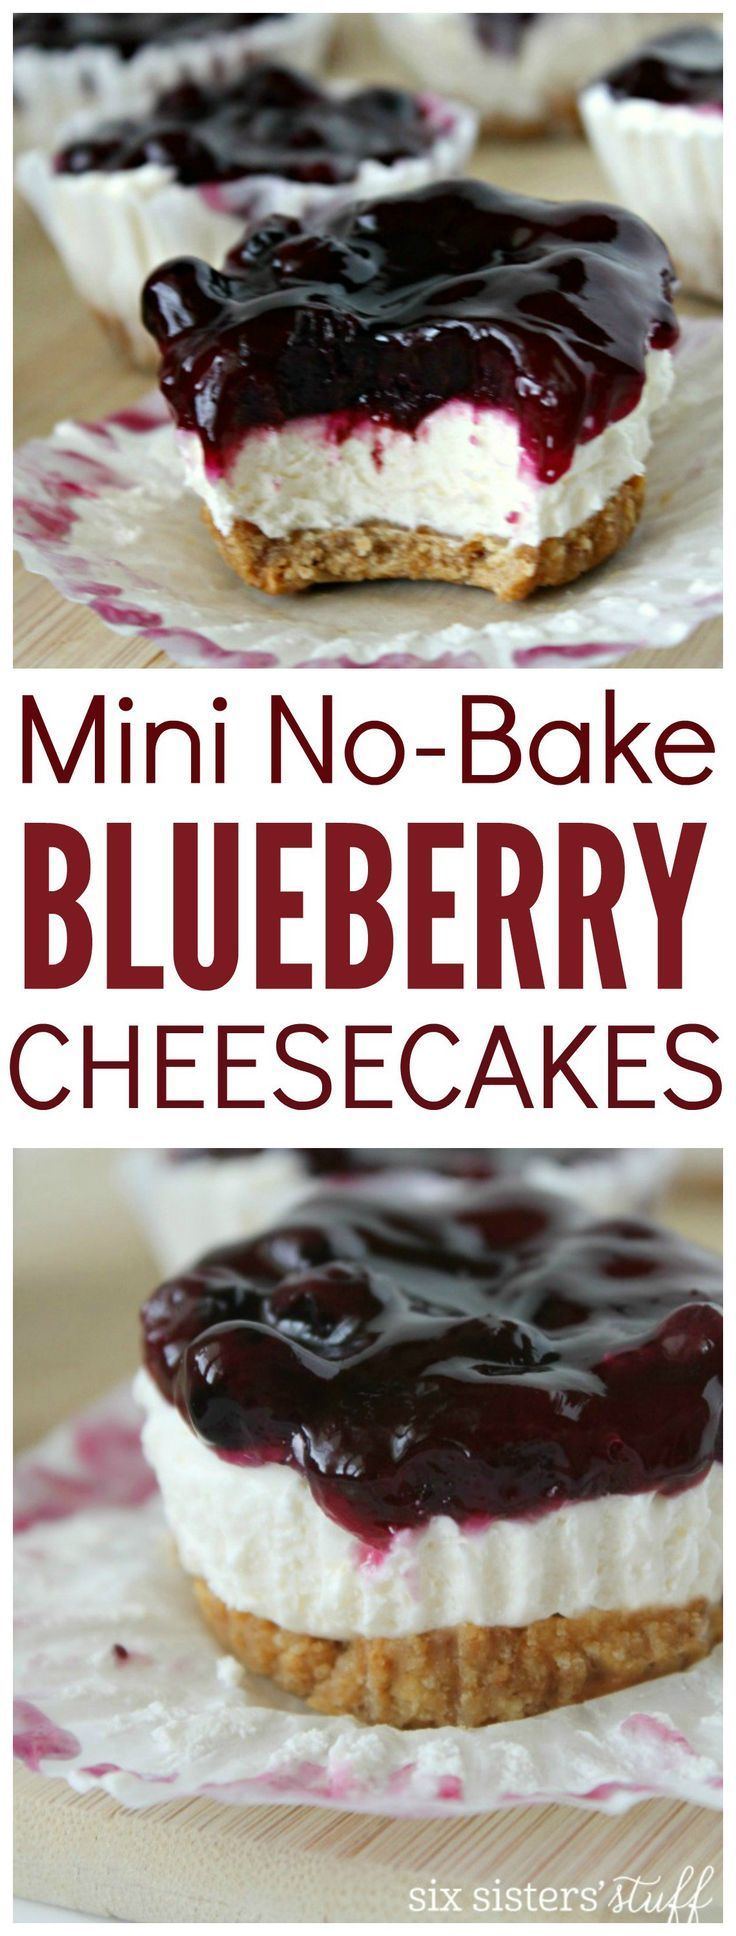 Mini No Bake Blueberry Cheesecakes from http://SixSistersStuff.com | Best Dessert Recipes | Cheesecake Recipe | Party Food | Easter Dessert Ideas